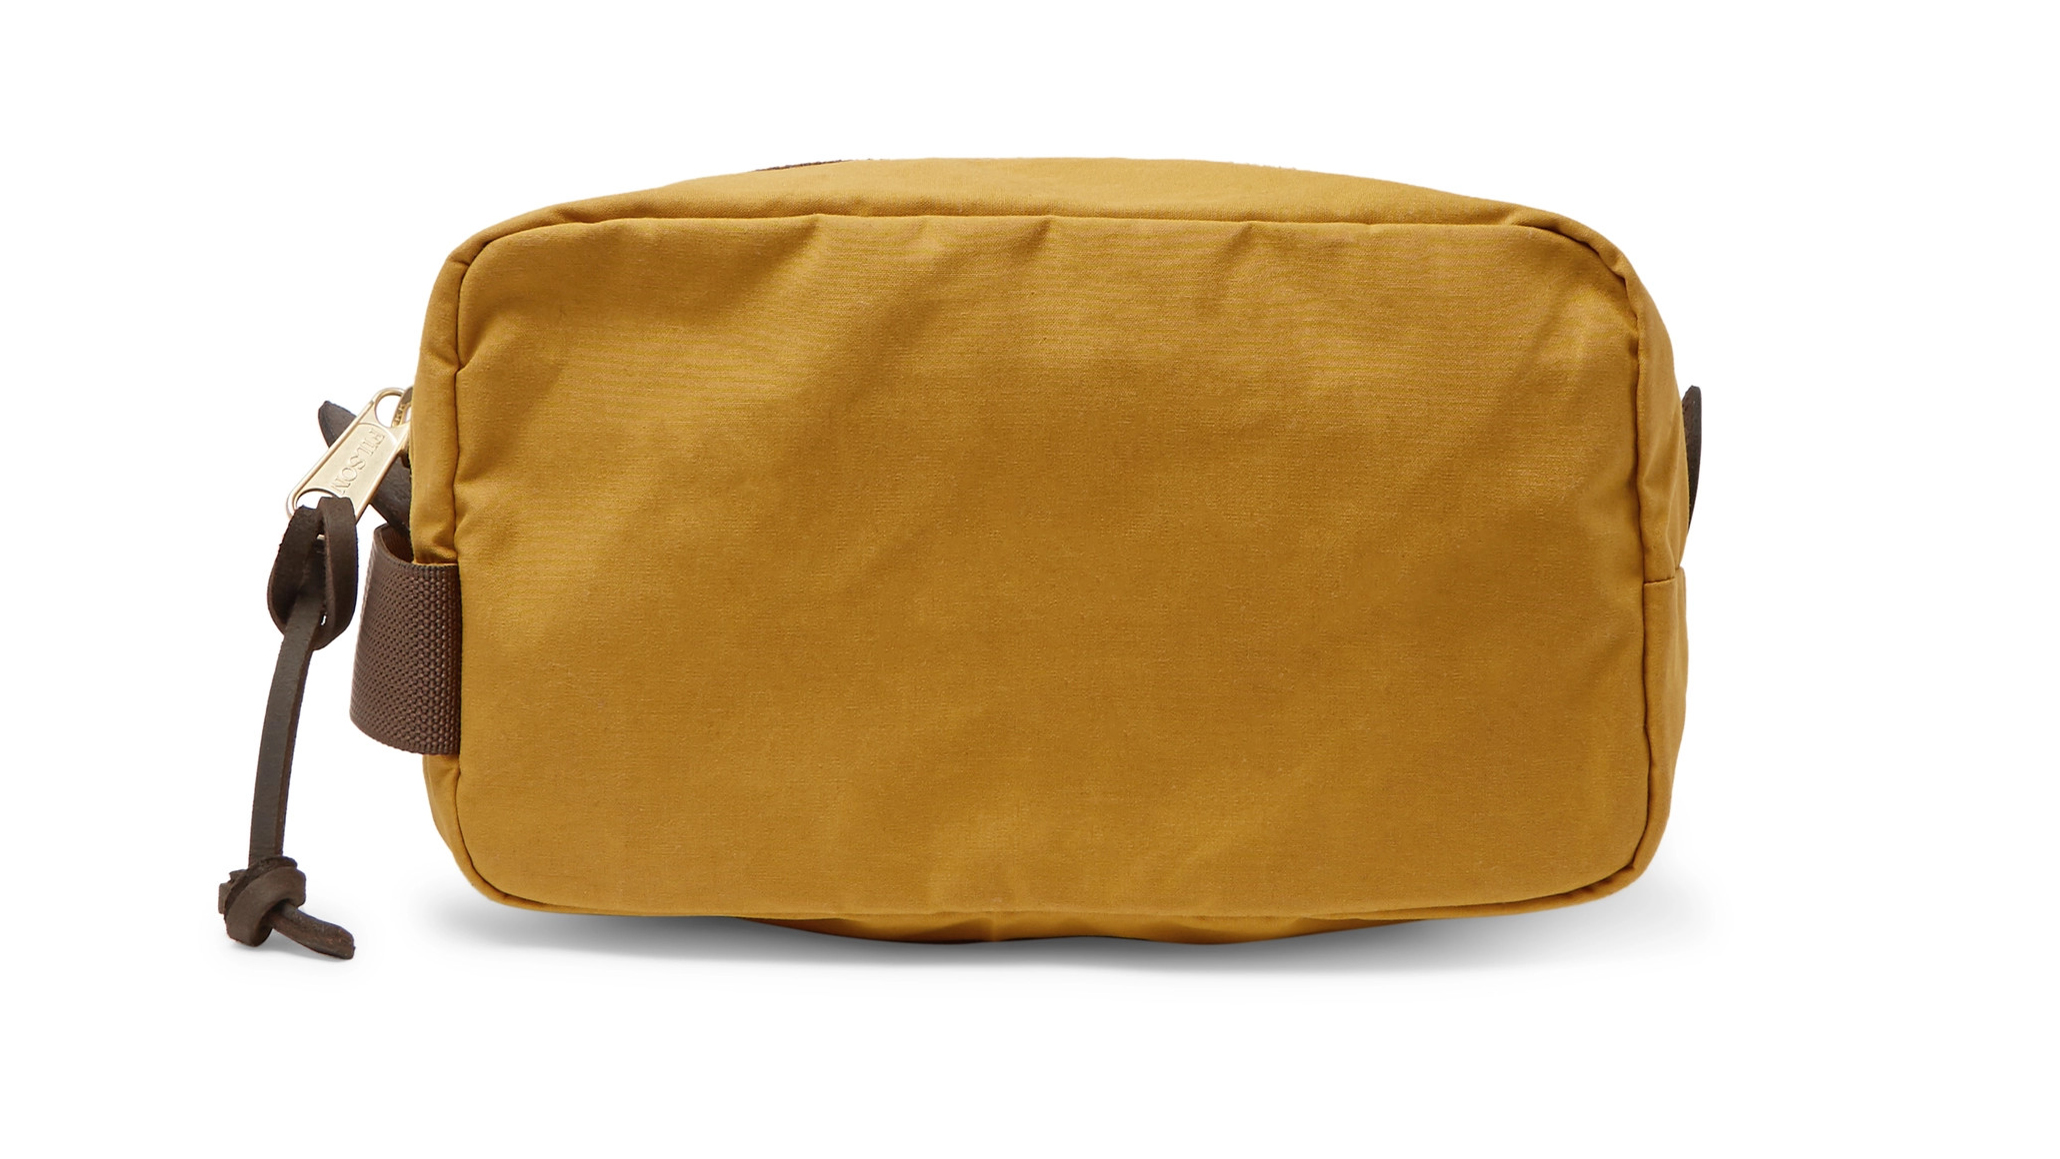 7 best toiletry bags and wash bags 2019  6f67164e8d21a